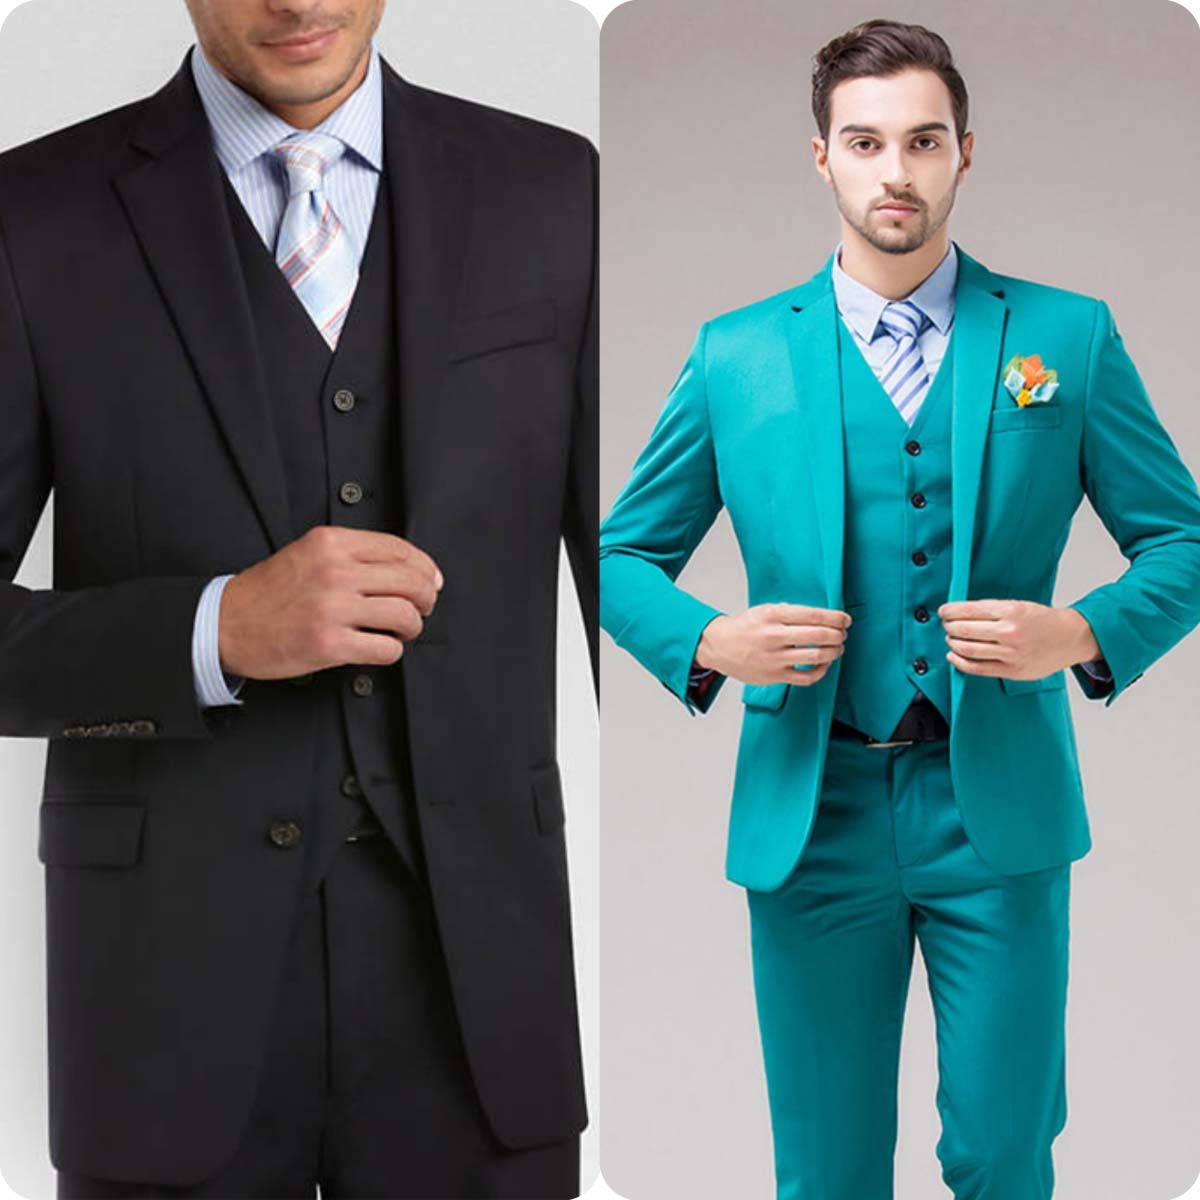 Lovely Grooms Outfits For Wedding Photos - Wedding Ideas - memiocall.com